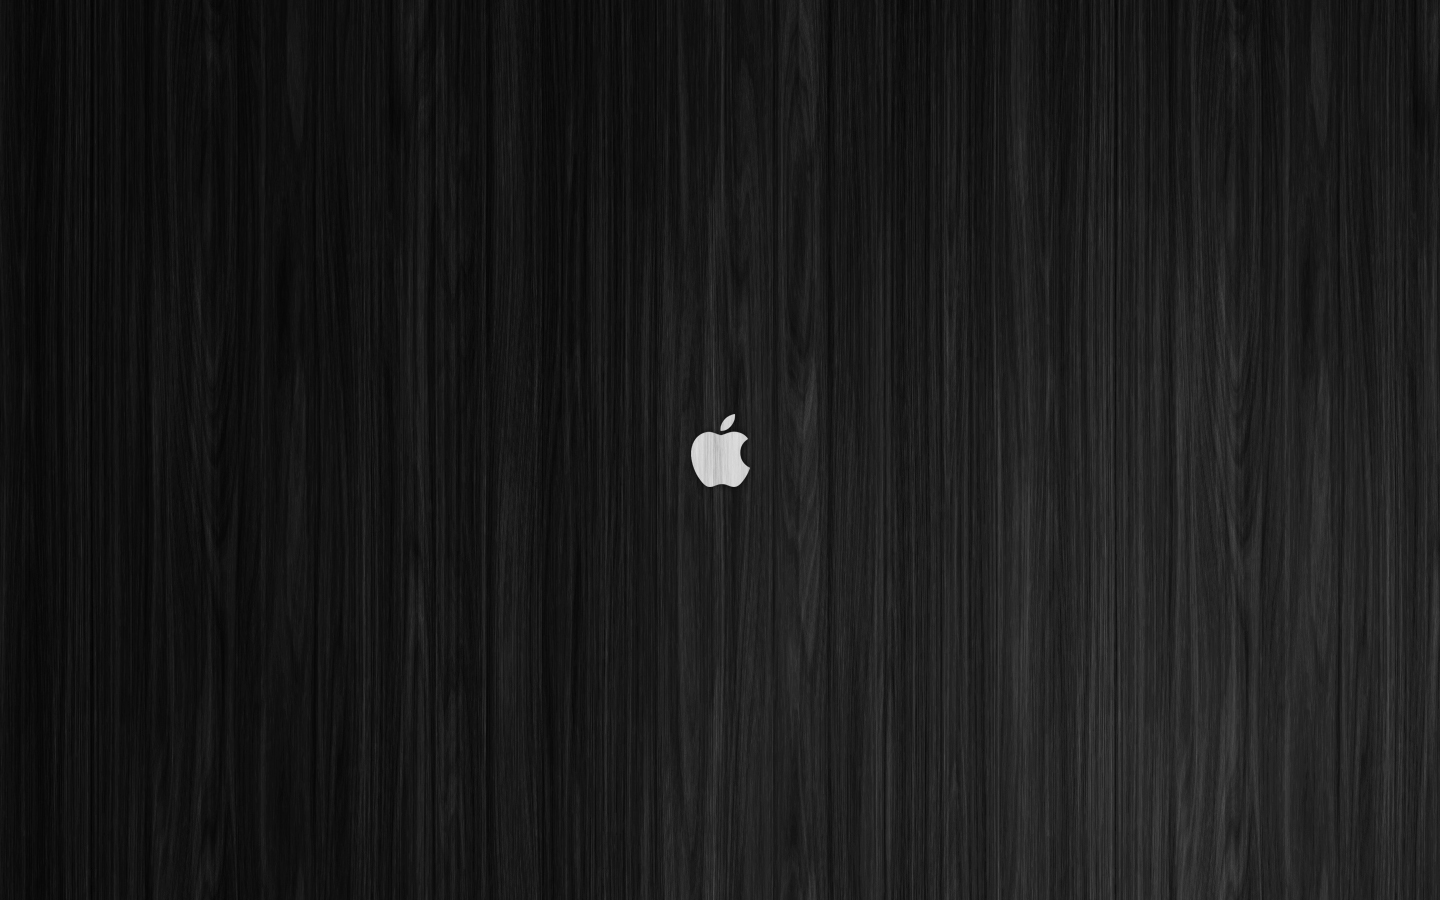 White Apple on Black Wood Mac Wallpaper by ZGraphx on 1440x900